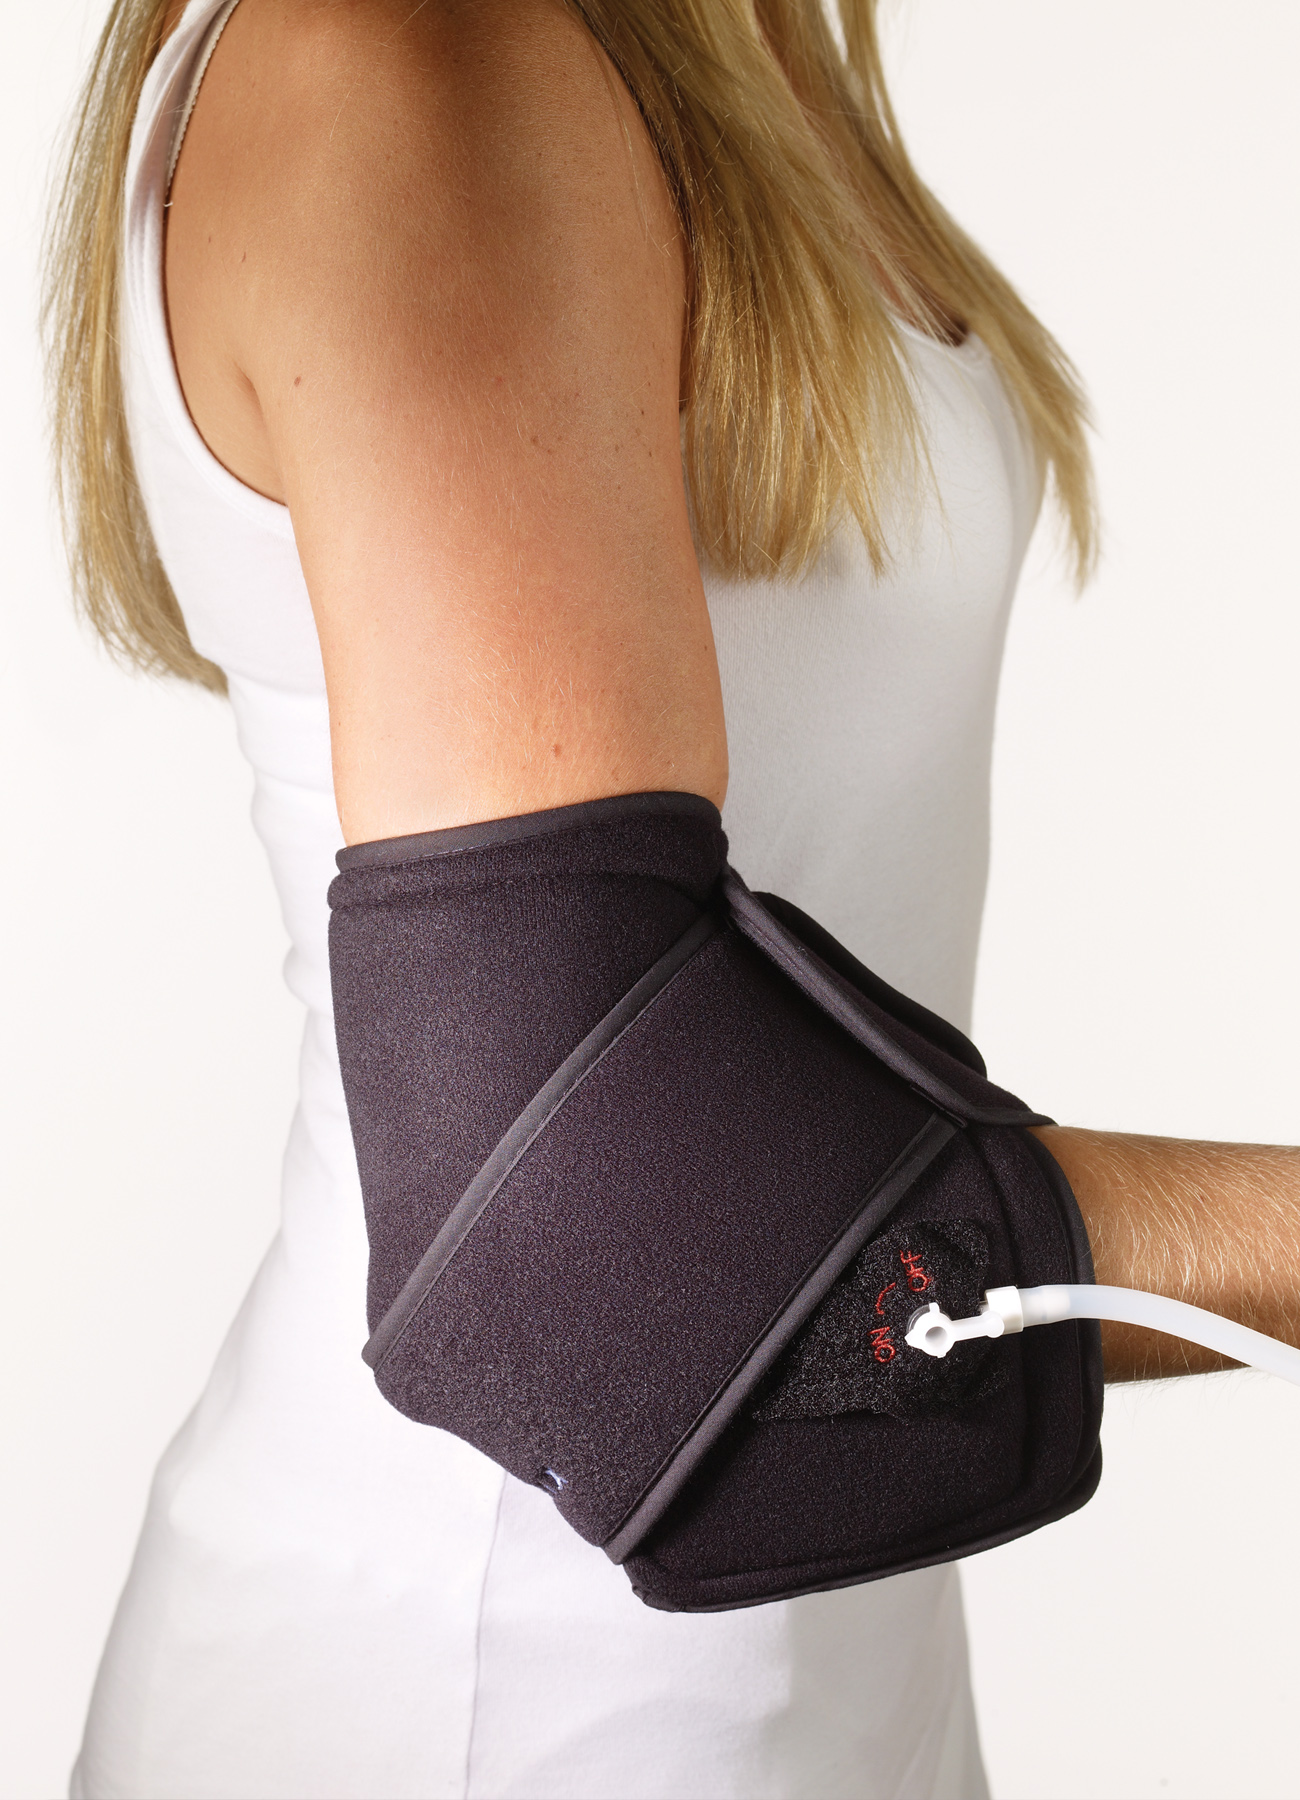 Cryo Pneumatic Elbow Wrap